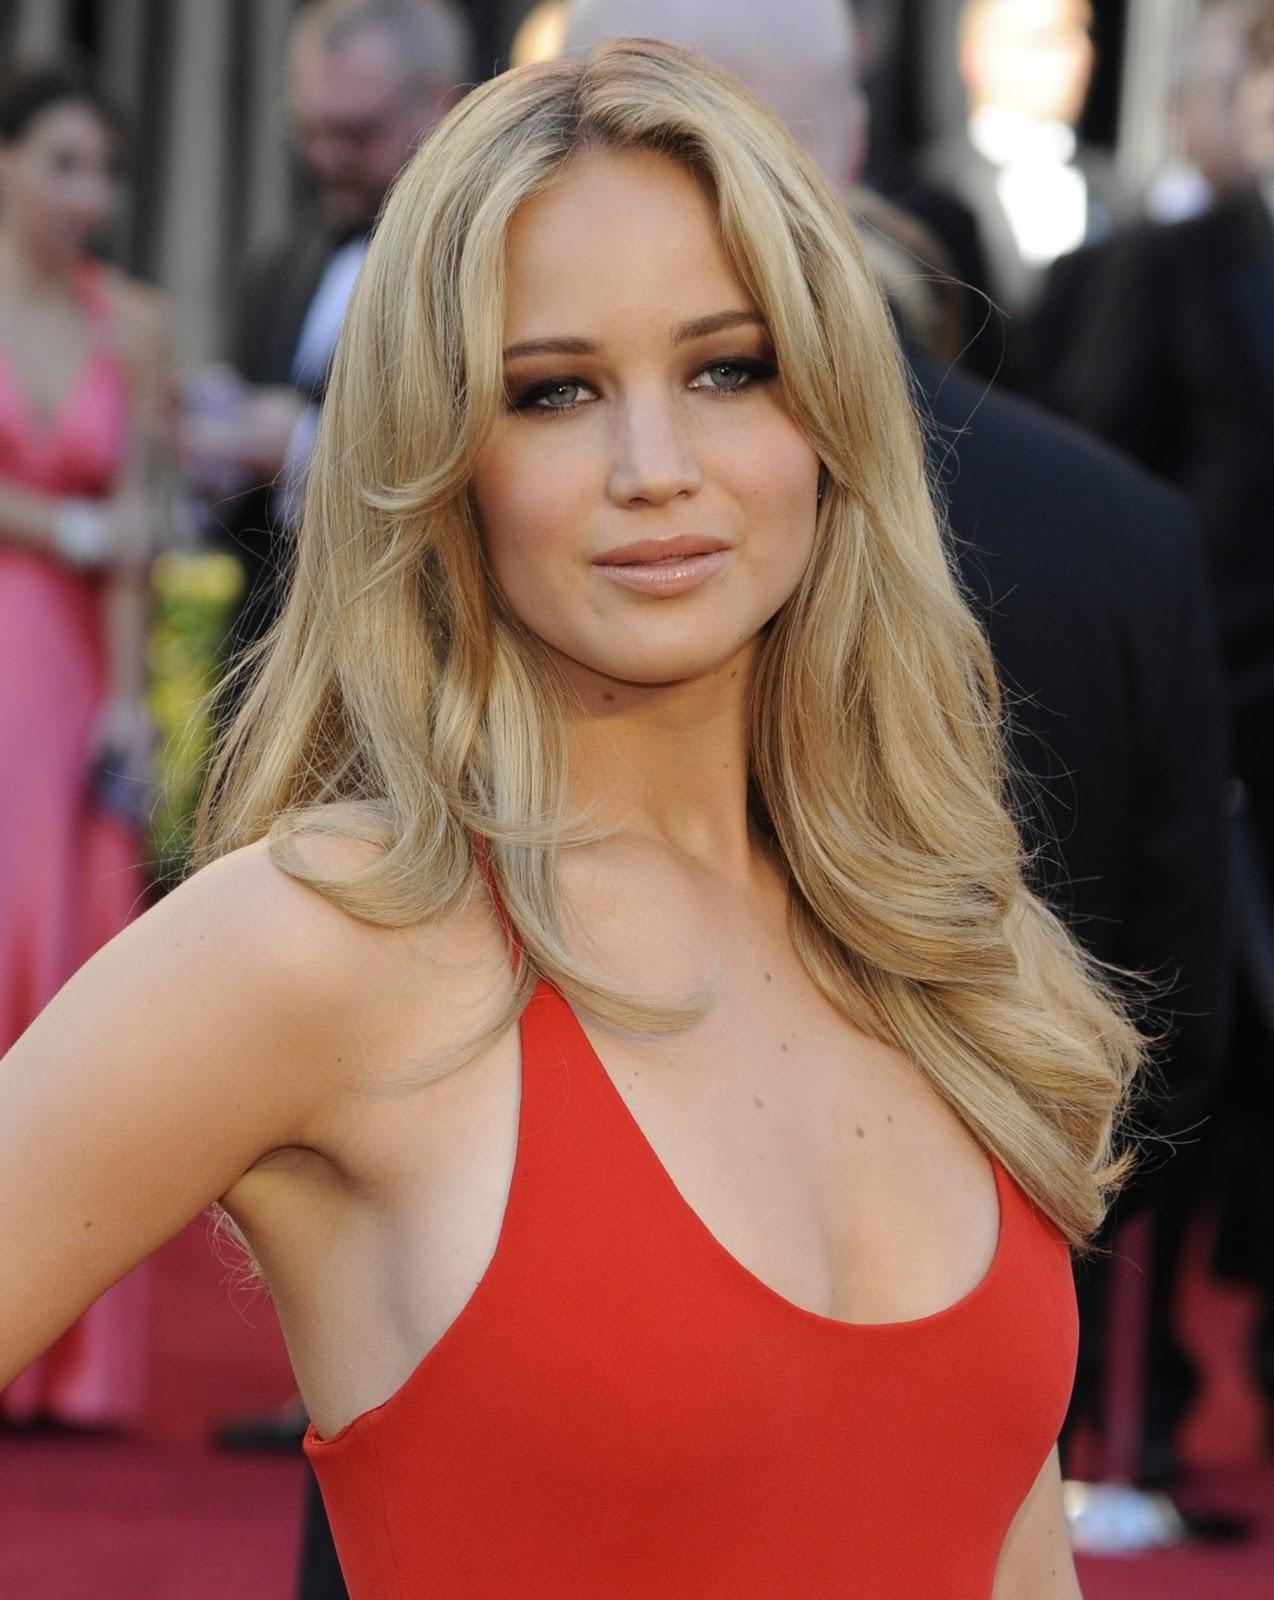 Tías de 25 a 34 años - Página 3 Jennifer-lawrence-hot-kiss-hot-1623728394